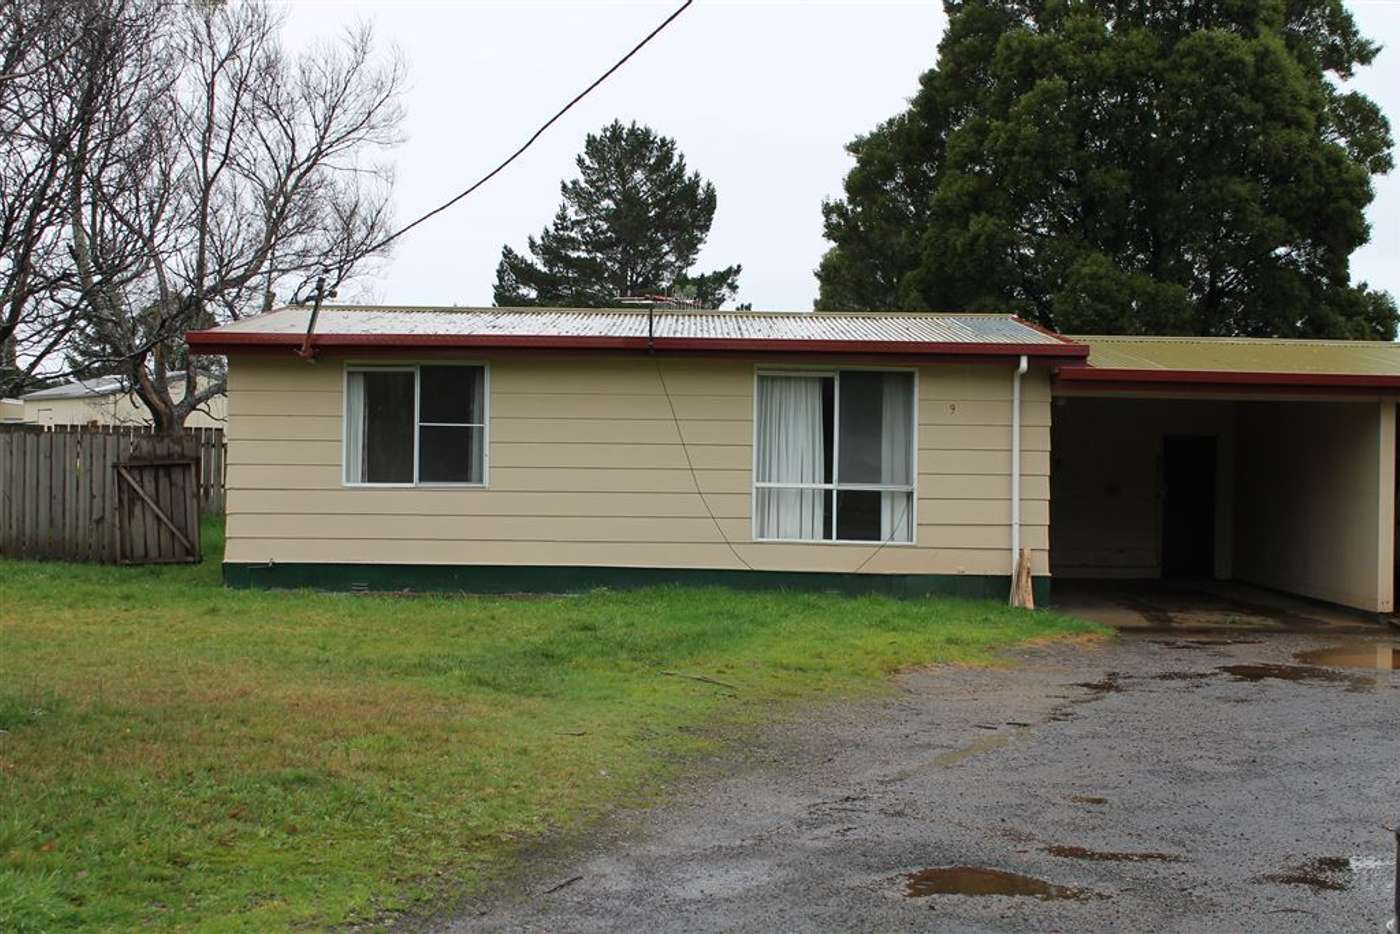 Main view of Homely unit listing, 9 Federation Ct, Zeehan TAS 7469